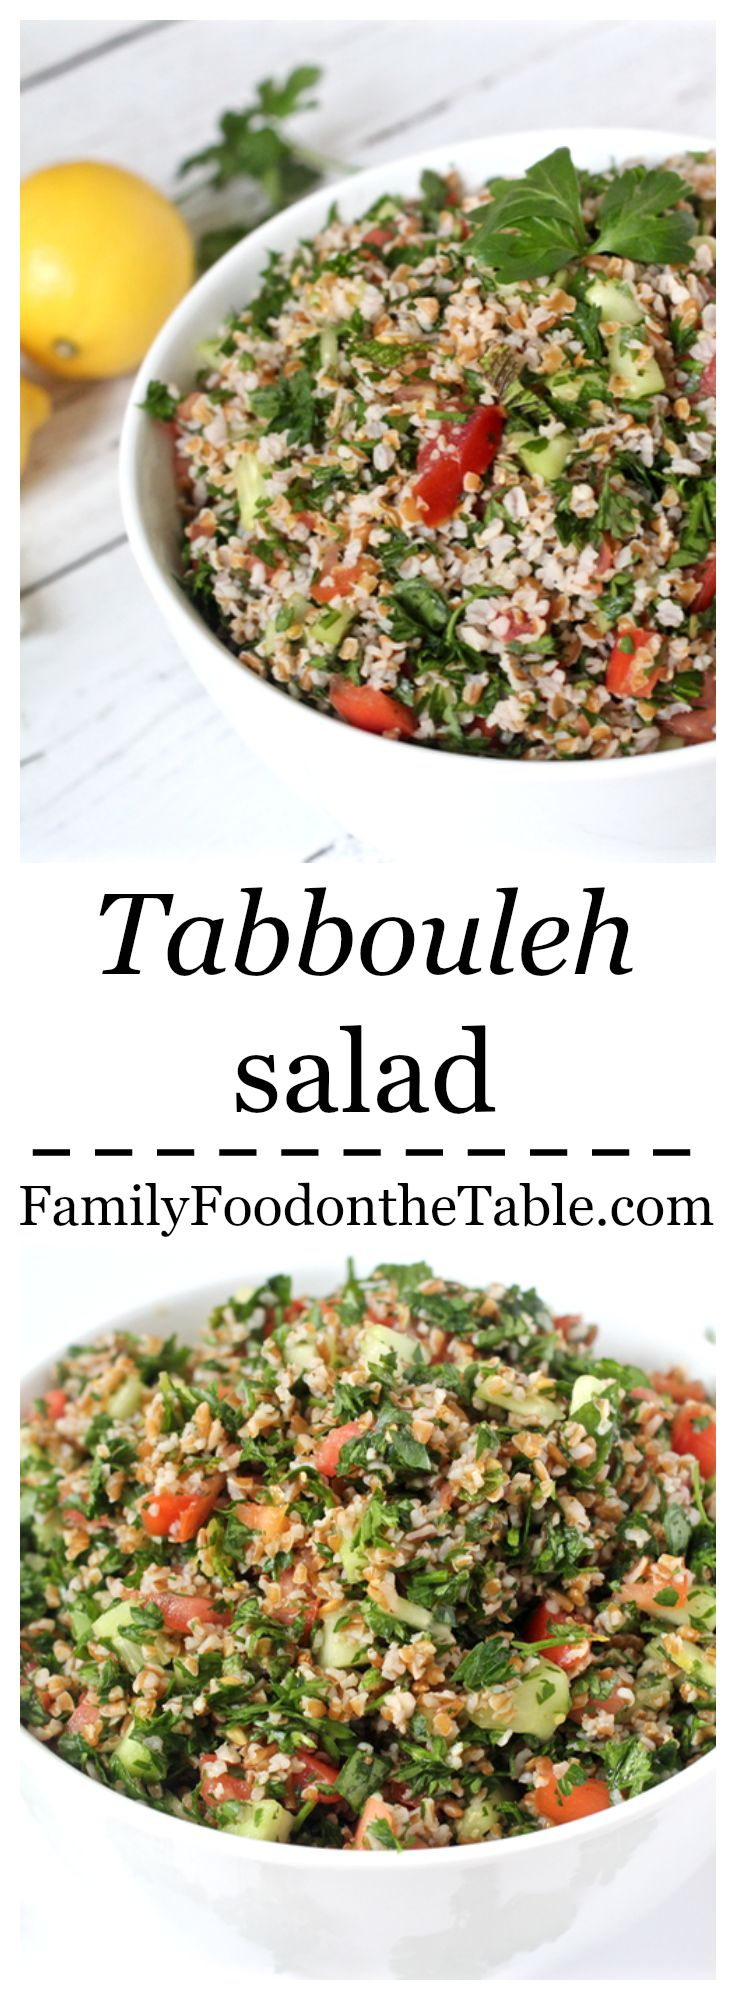 Tabbouleh salad - Bursting with bright, fresh flavors! | Family Food on the Table